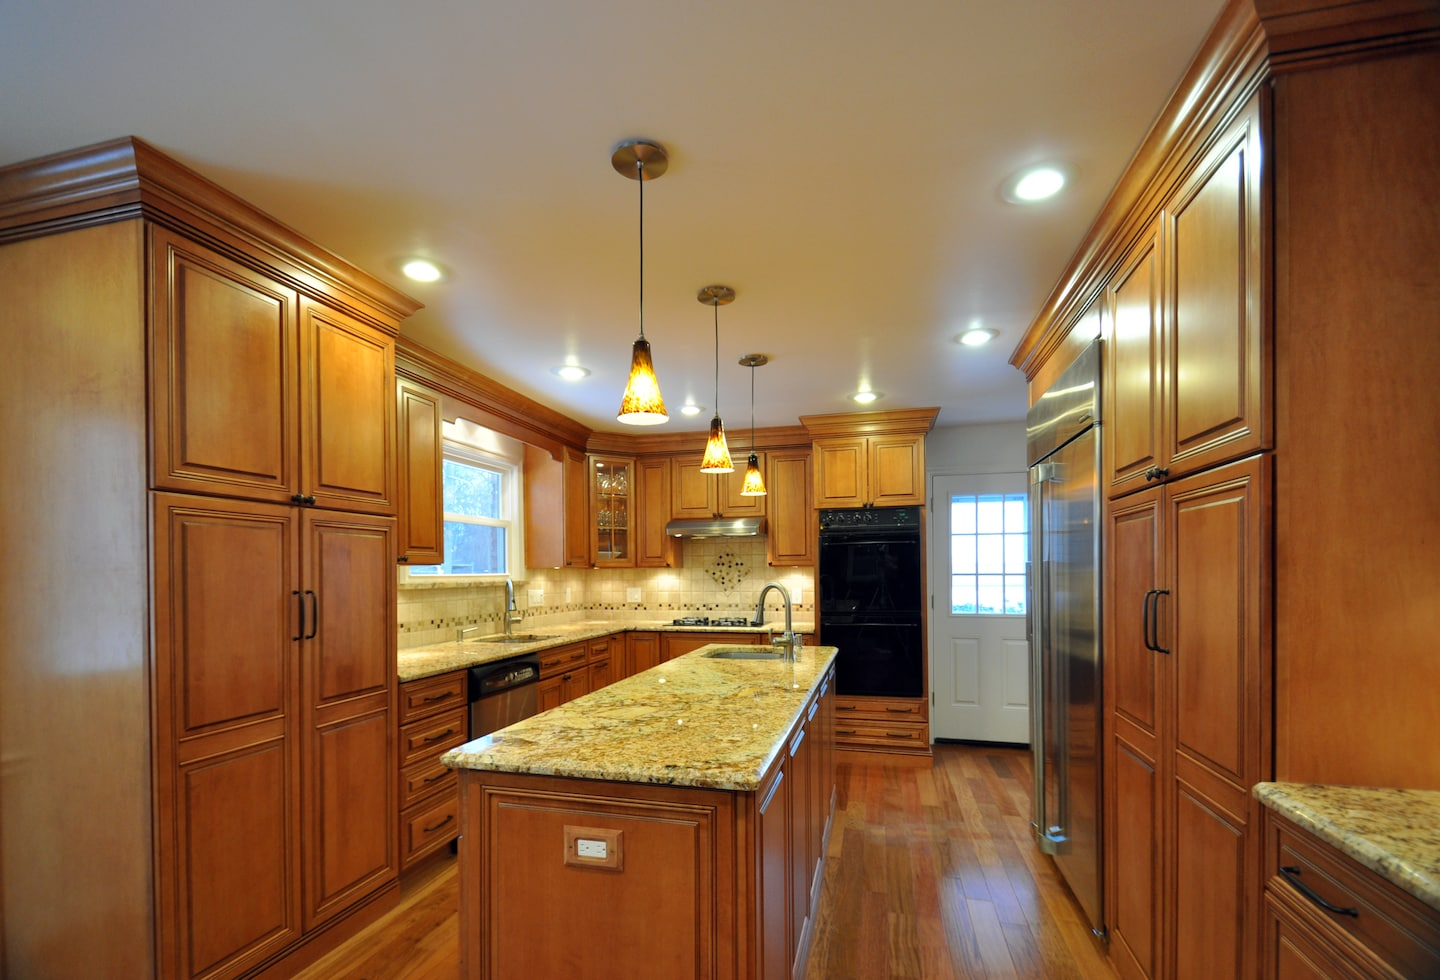 decor countertops floors winfield pa 17889 angies list.htm home breakthrough llc reviews frederick  md angie s list  home breakthrough llc reviews